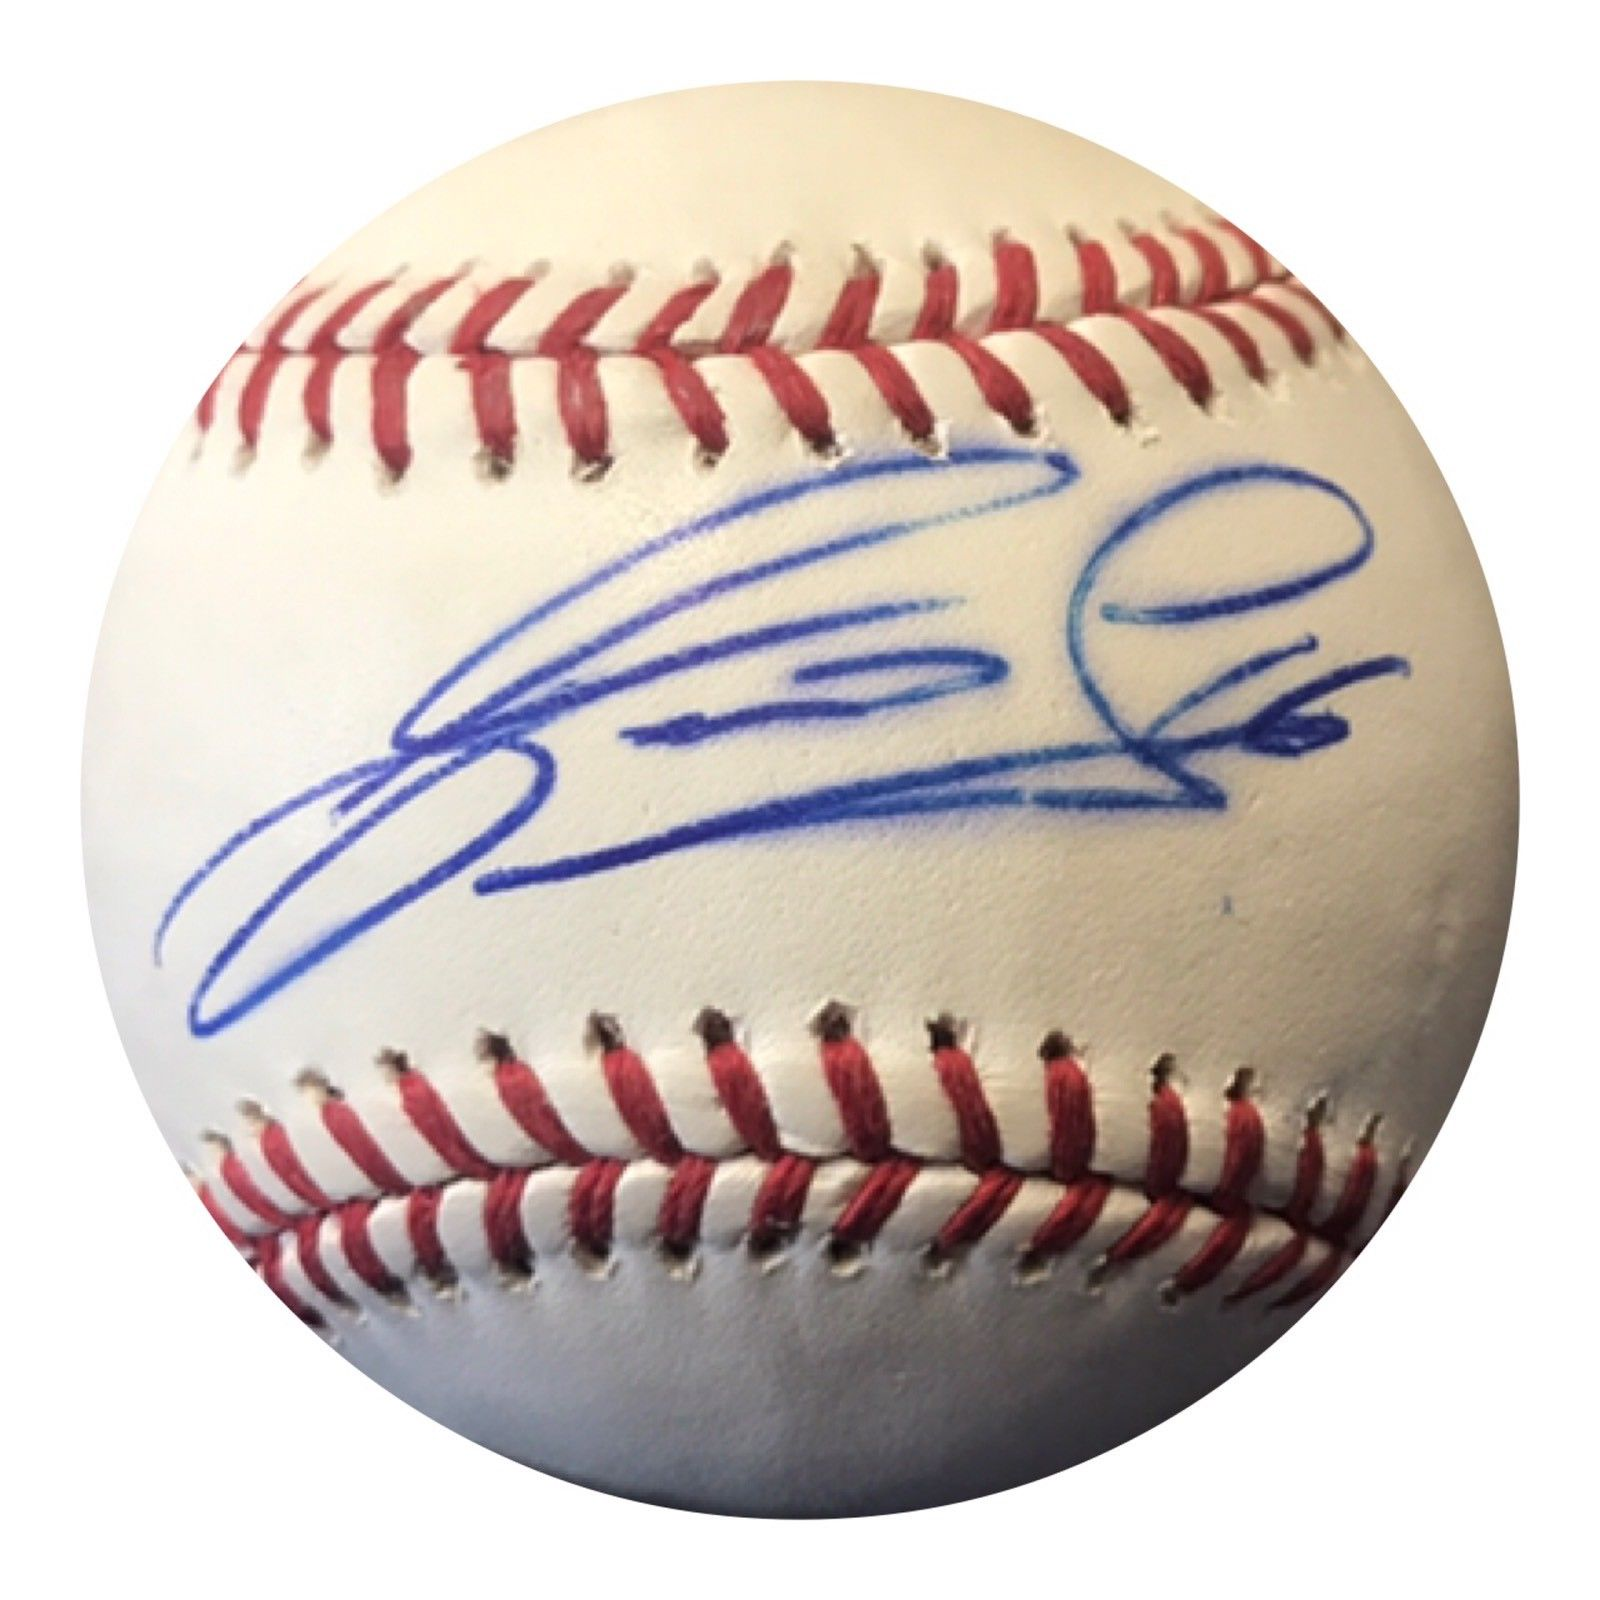 Jose Fernandez Authentic Signed MLB Baseball - MIAMI MARLINS ALL STAR RARE - Top Notch Signatures LLC